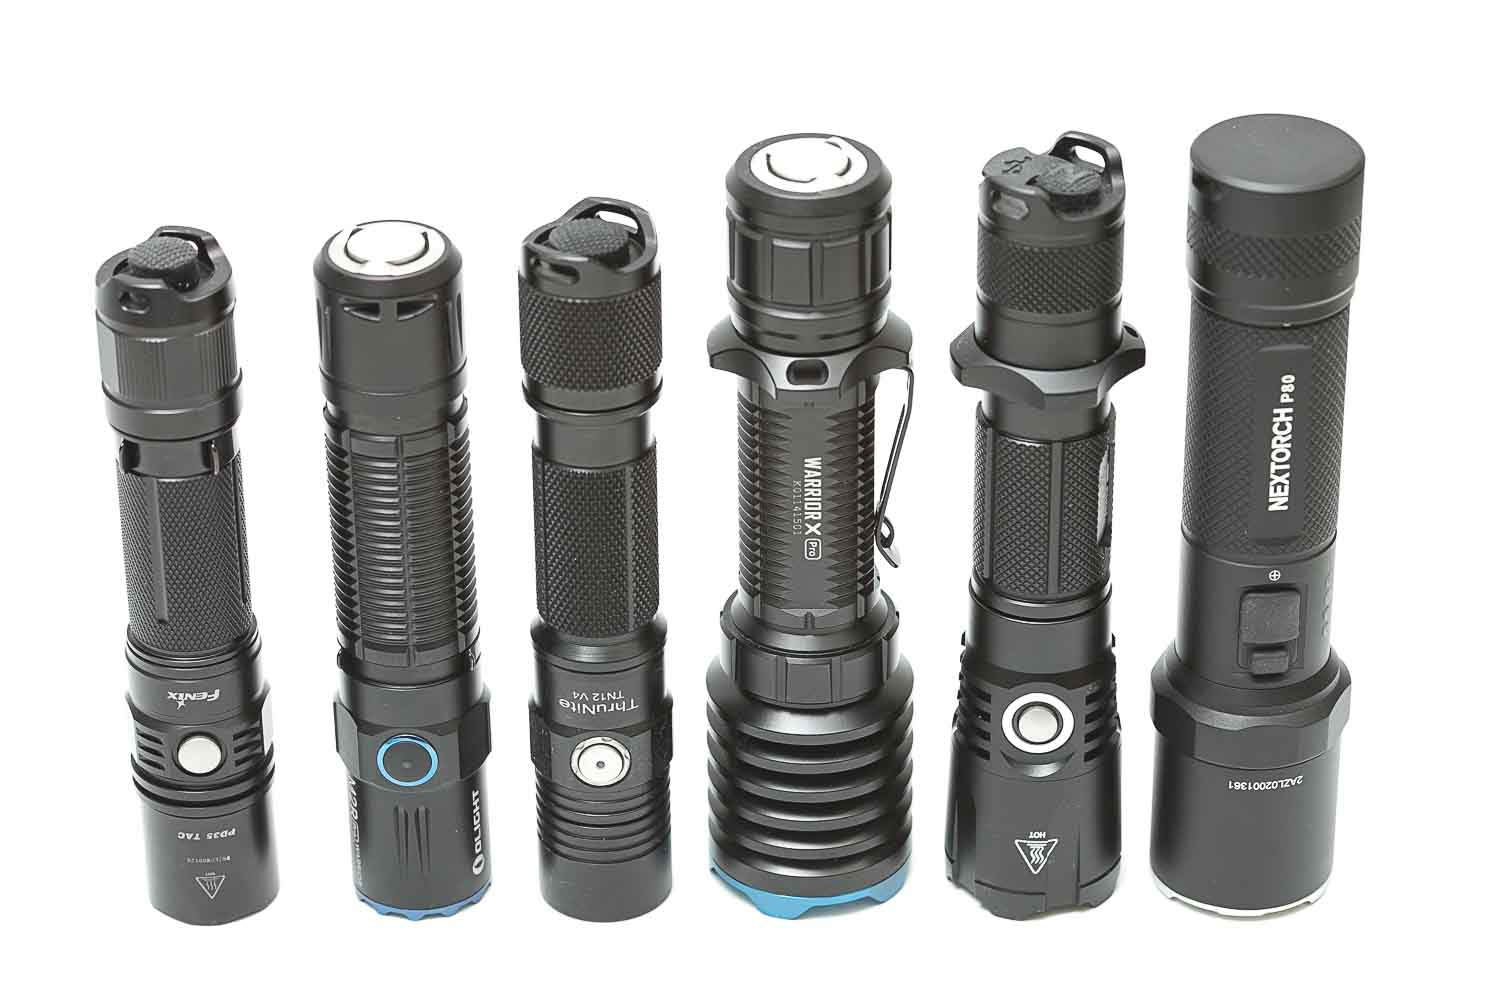 Nextorch P80 compared to other flashlights 2